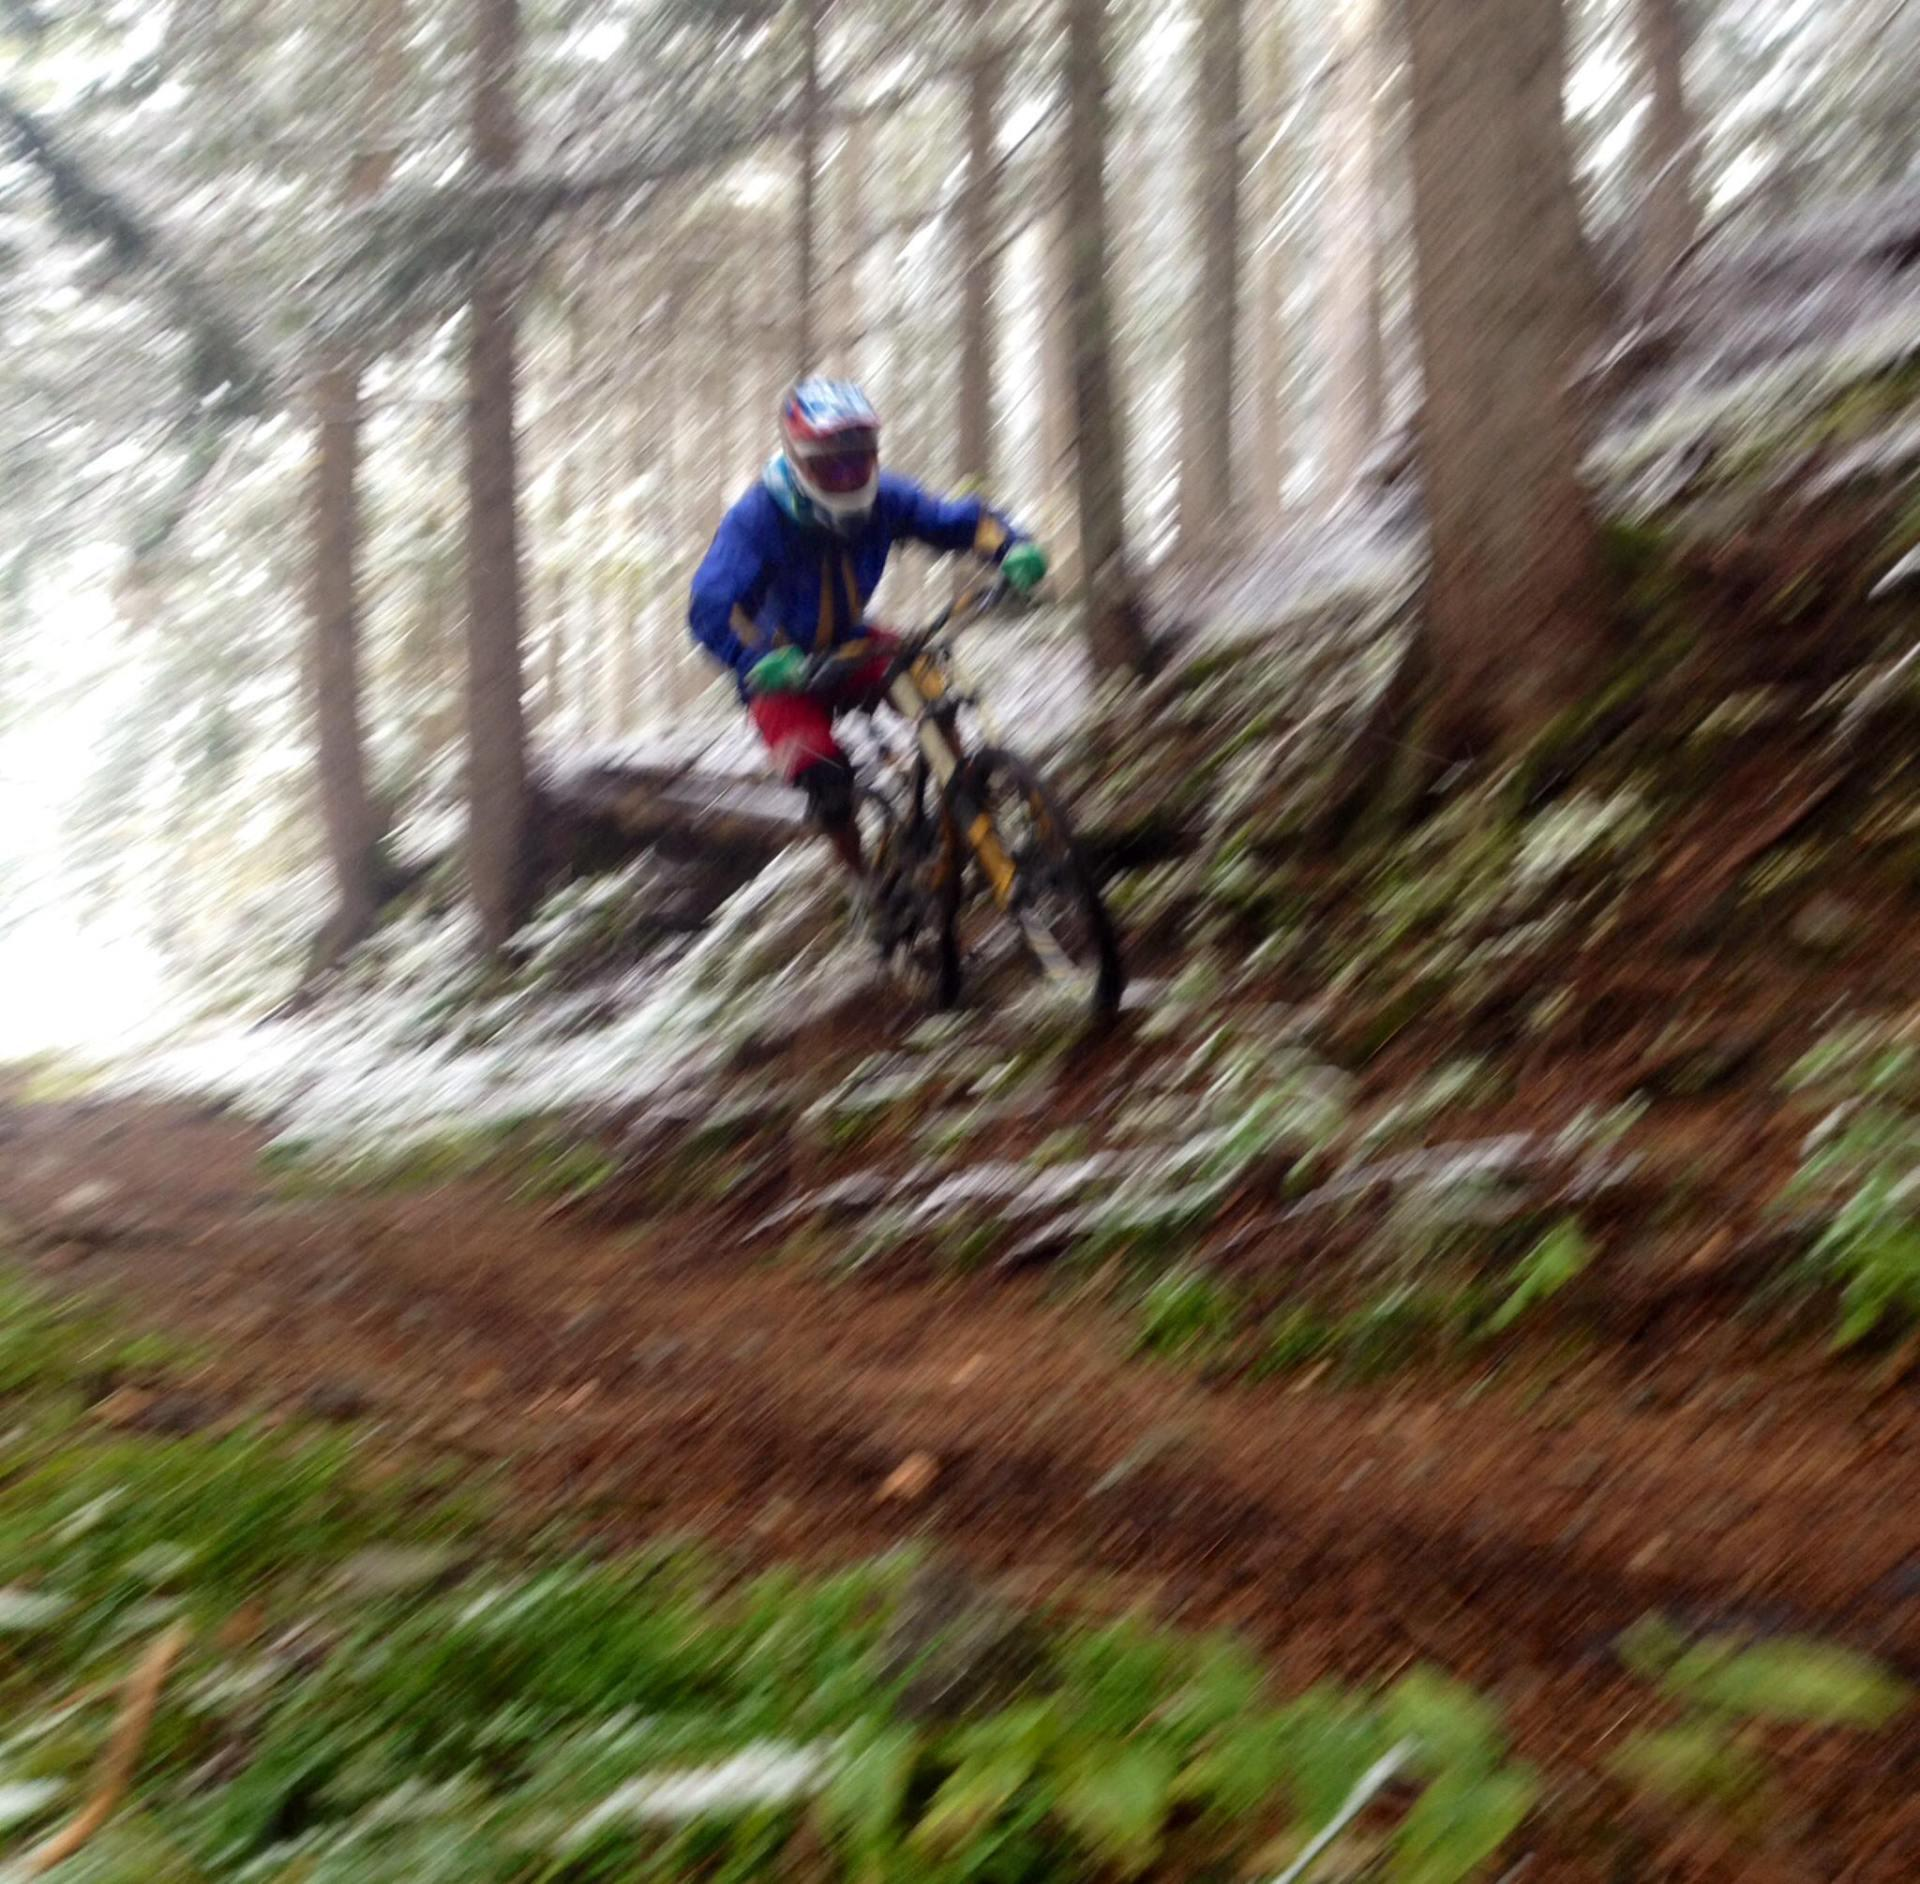 From winter to autumn, epic mtb ride in Chamonix